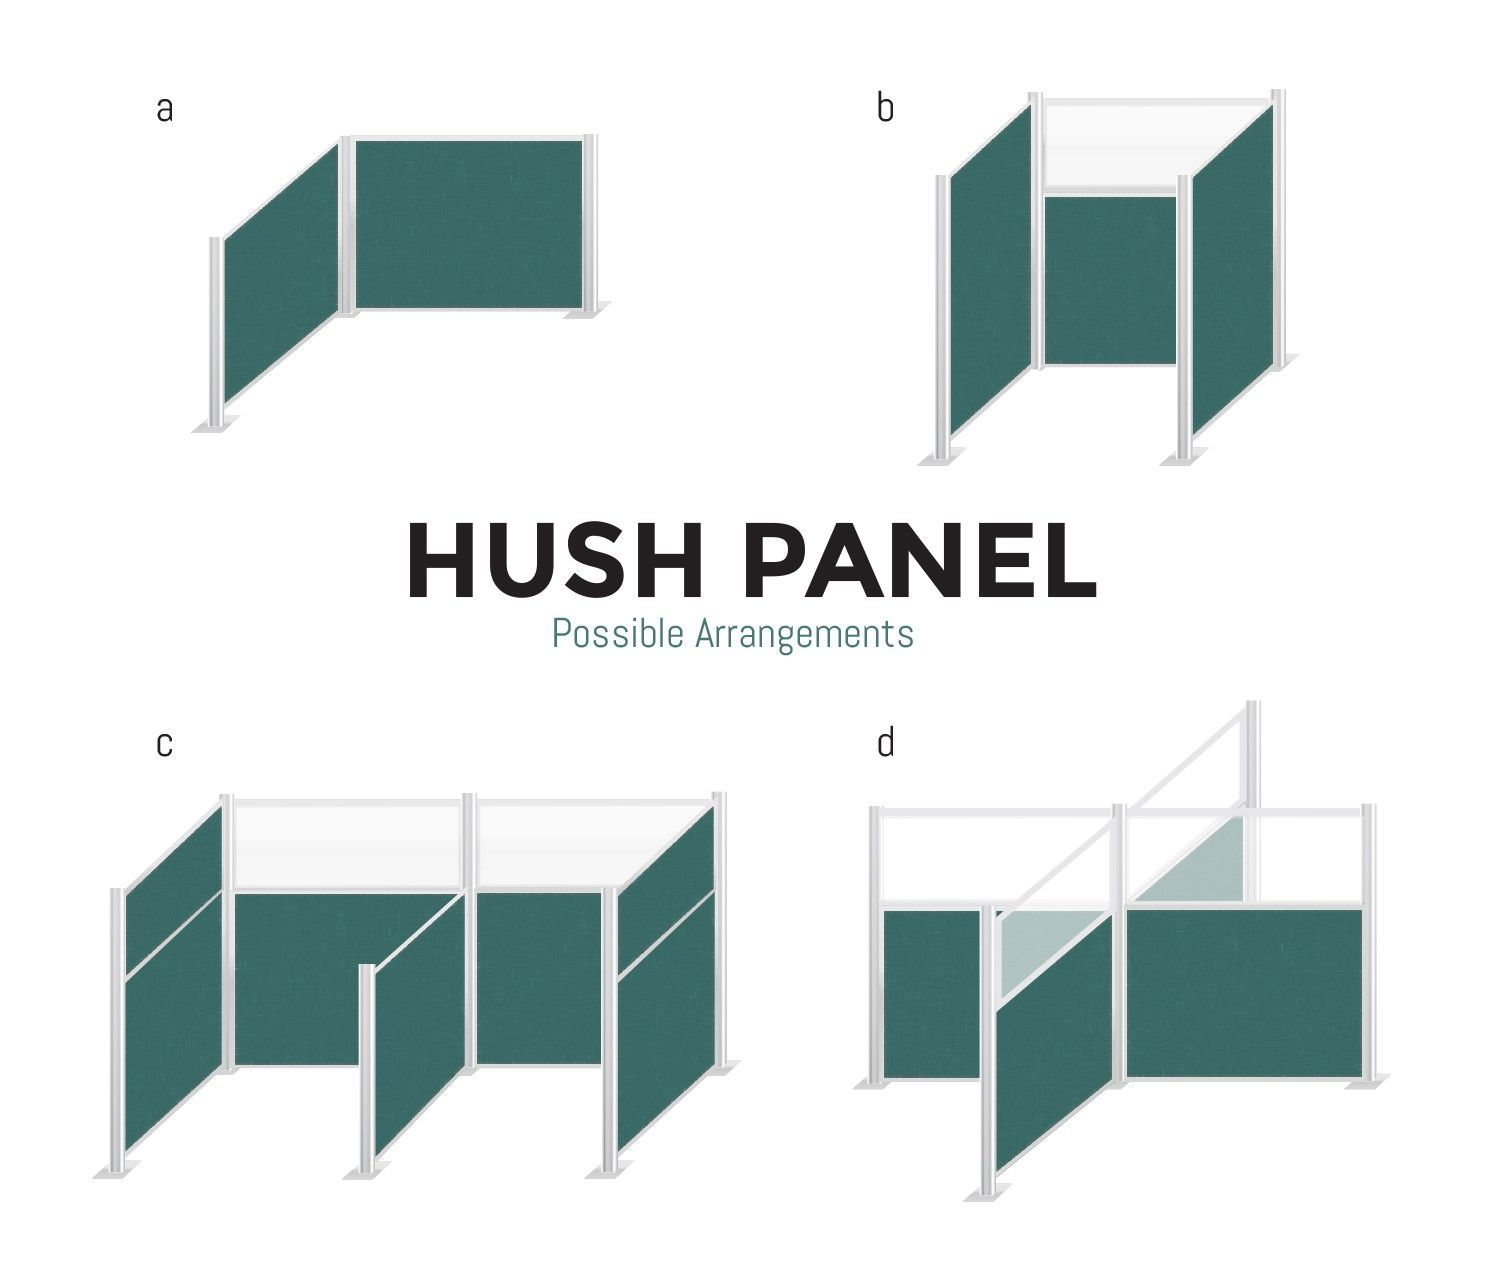 Our Hush Panel Configurable Cubicle Partition System allows